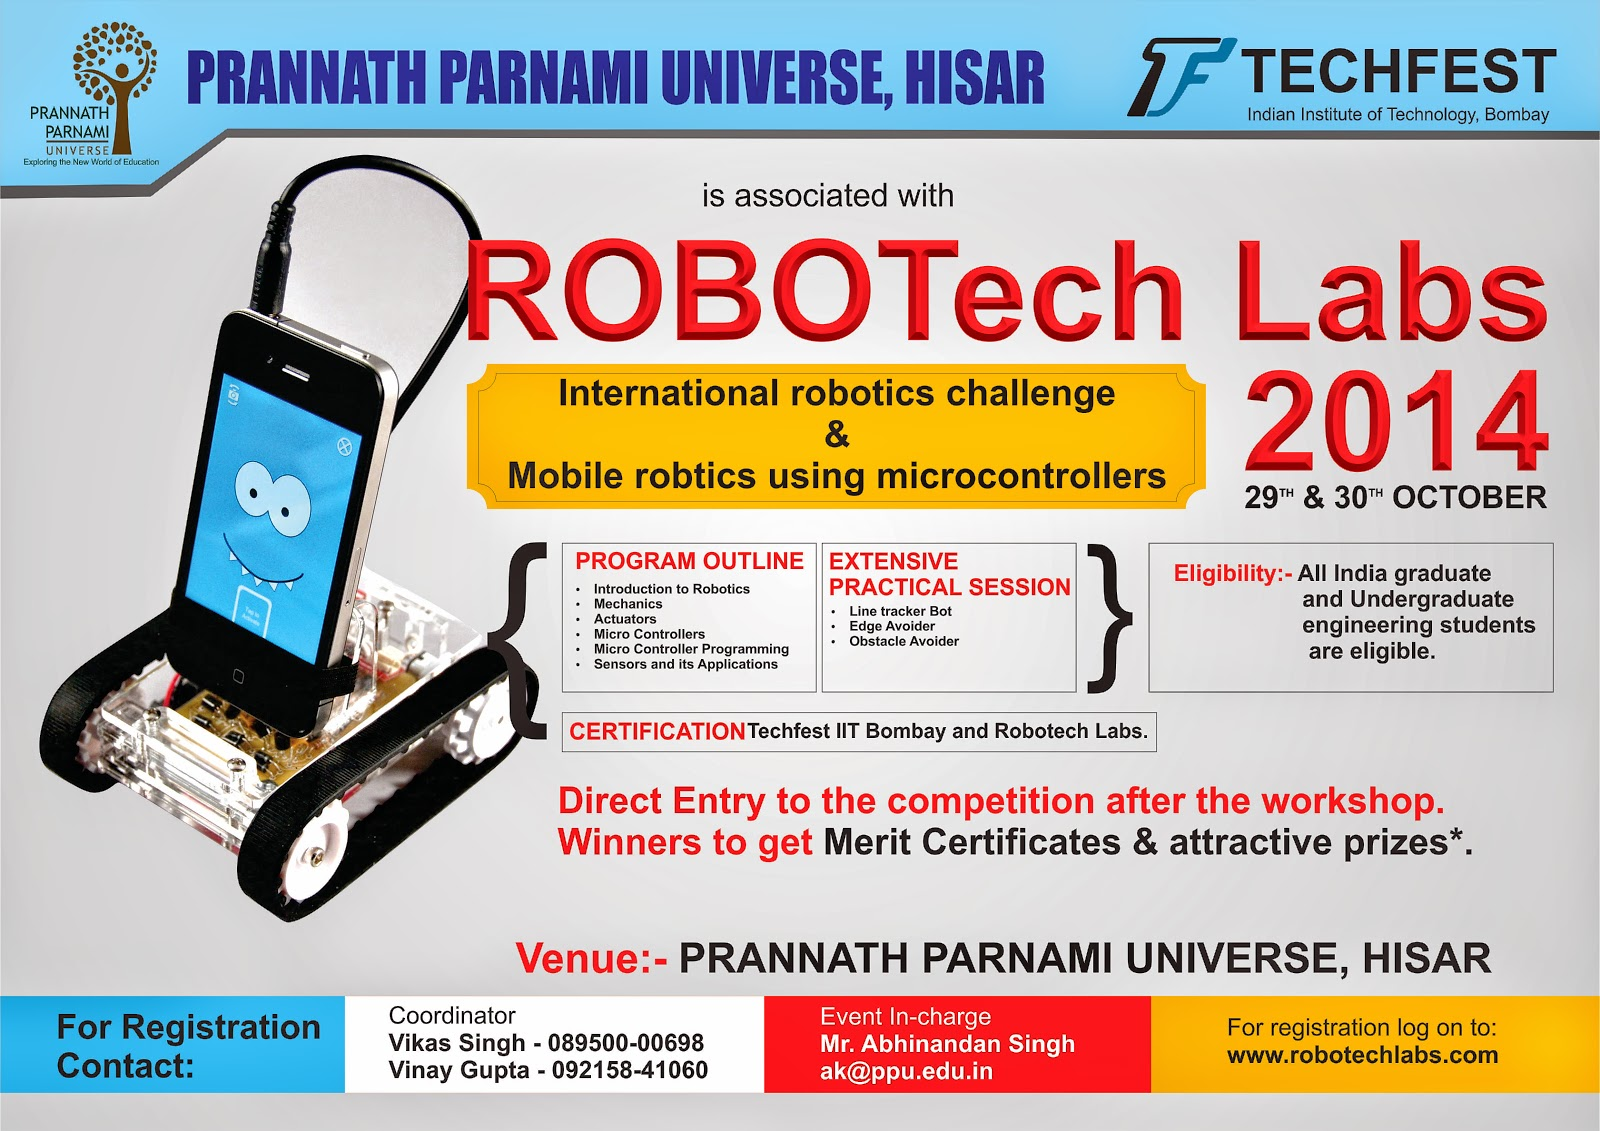 poster design ideas techfest iit bombay poster design print posters online cool inspiring poster templates illustration - Poster Designs Ideas